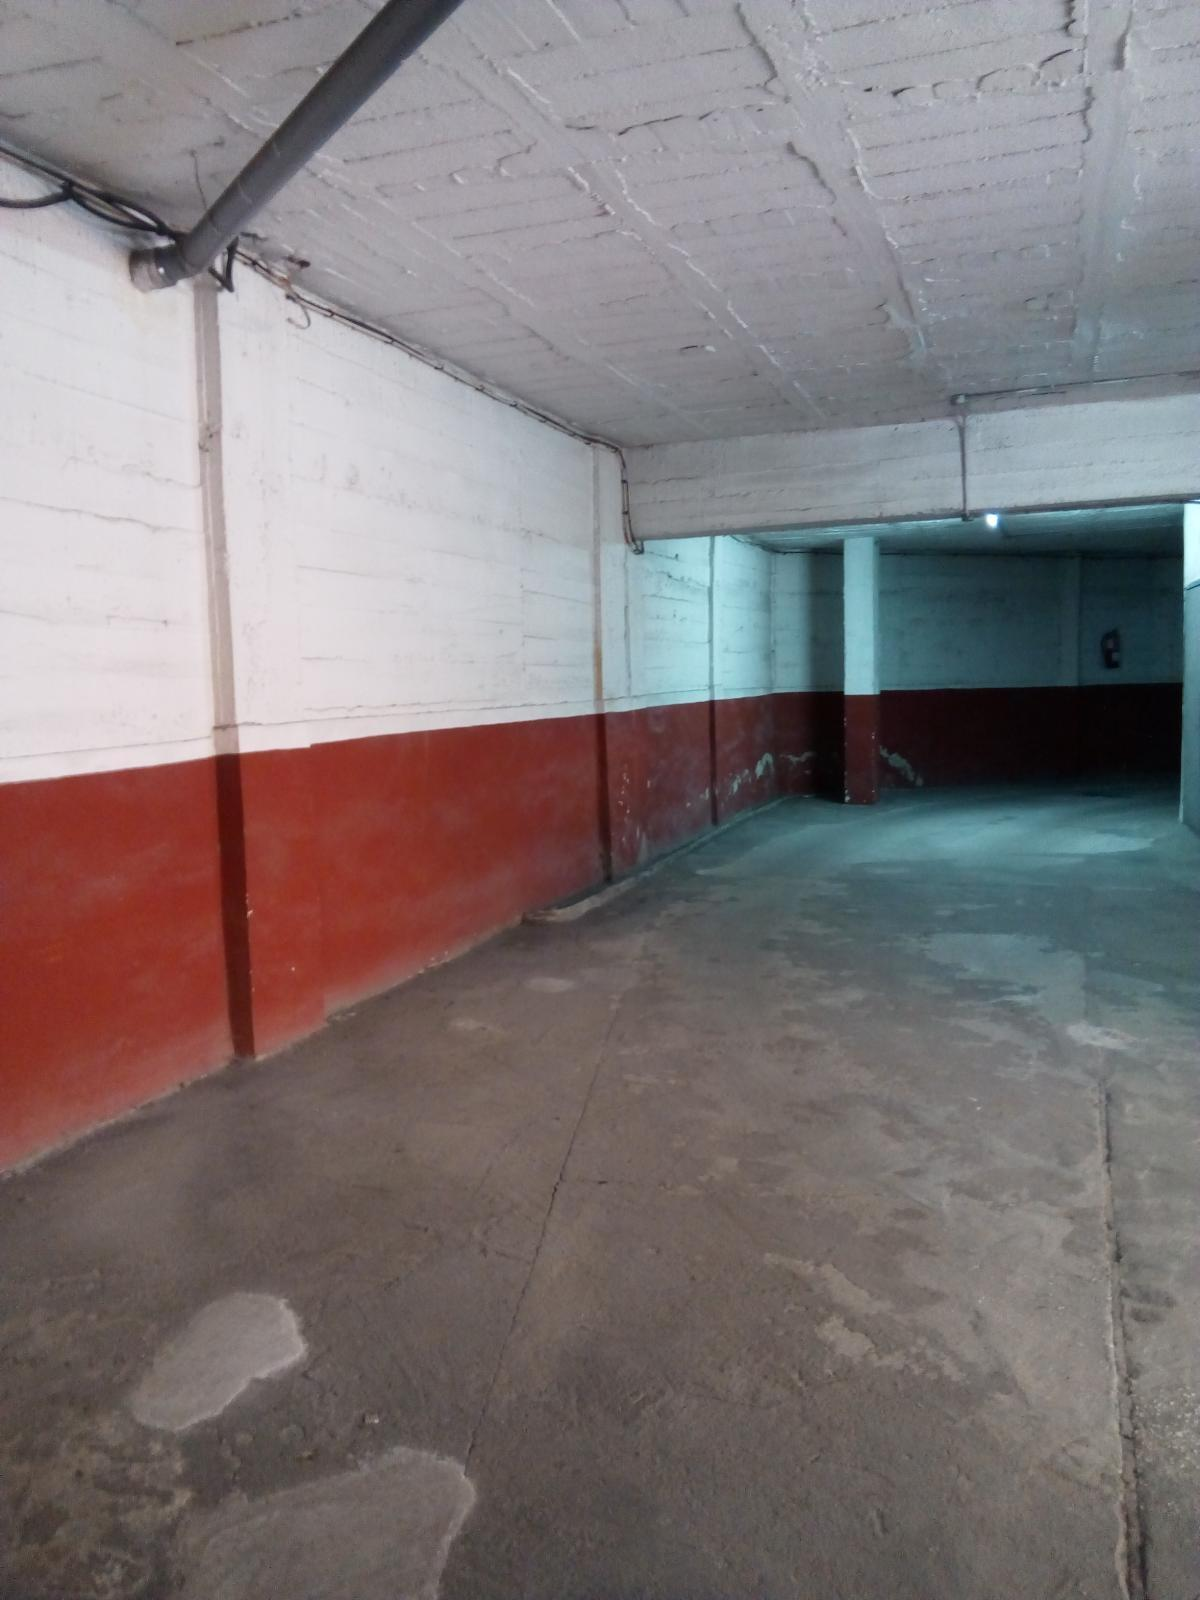 Garage for sale in Centro (Fuengirola), 30.000 € (Ref.: 1079)